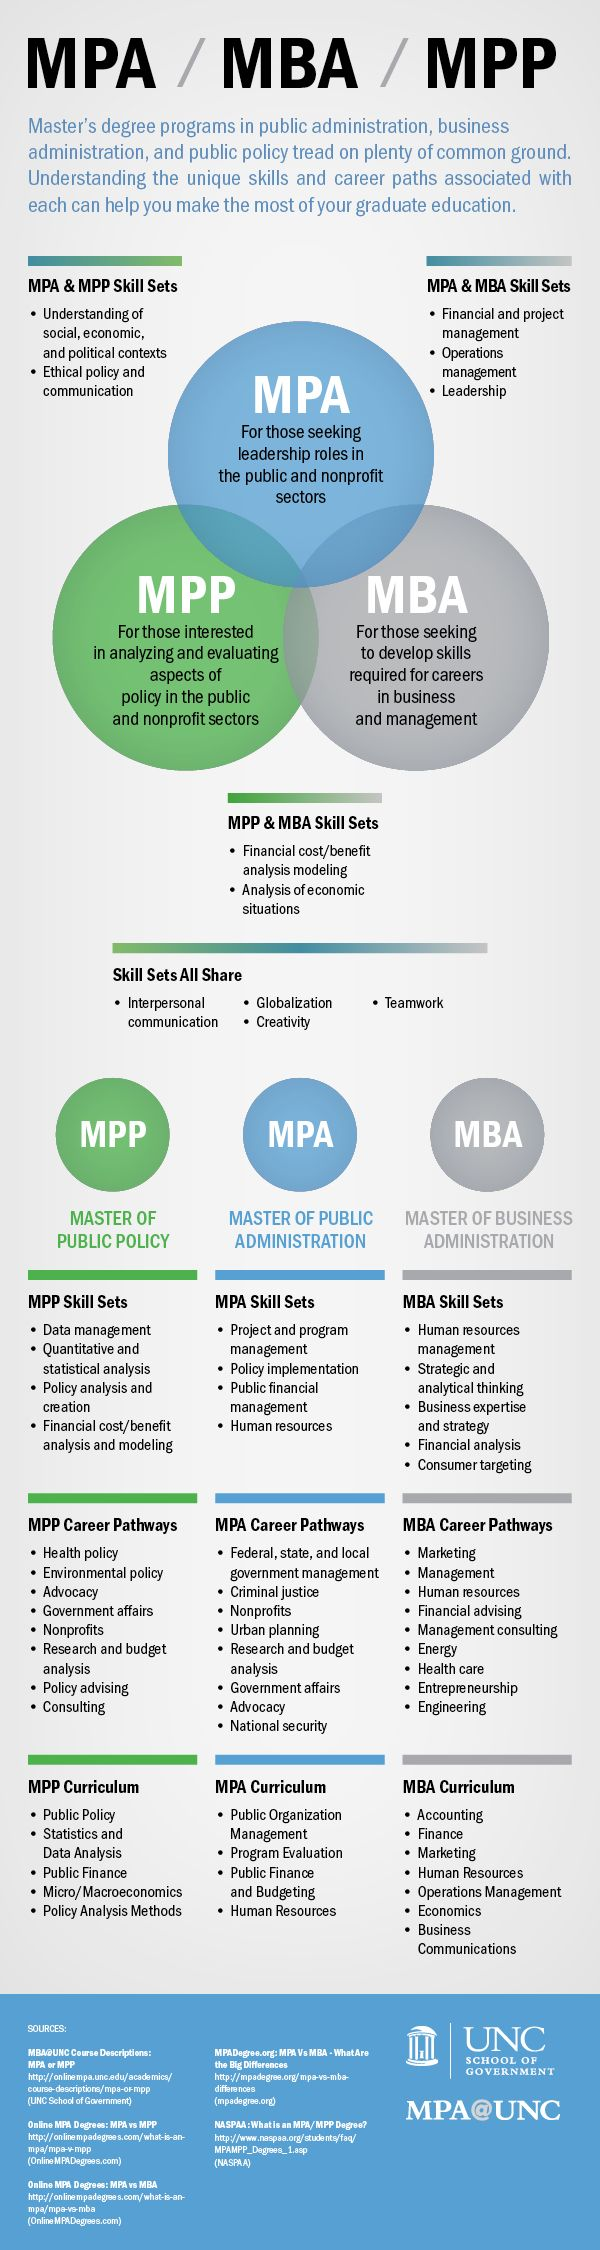 I am applying for a dual degree MBA/Master of Arts in